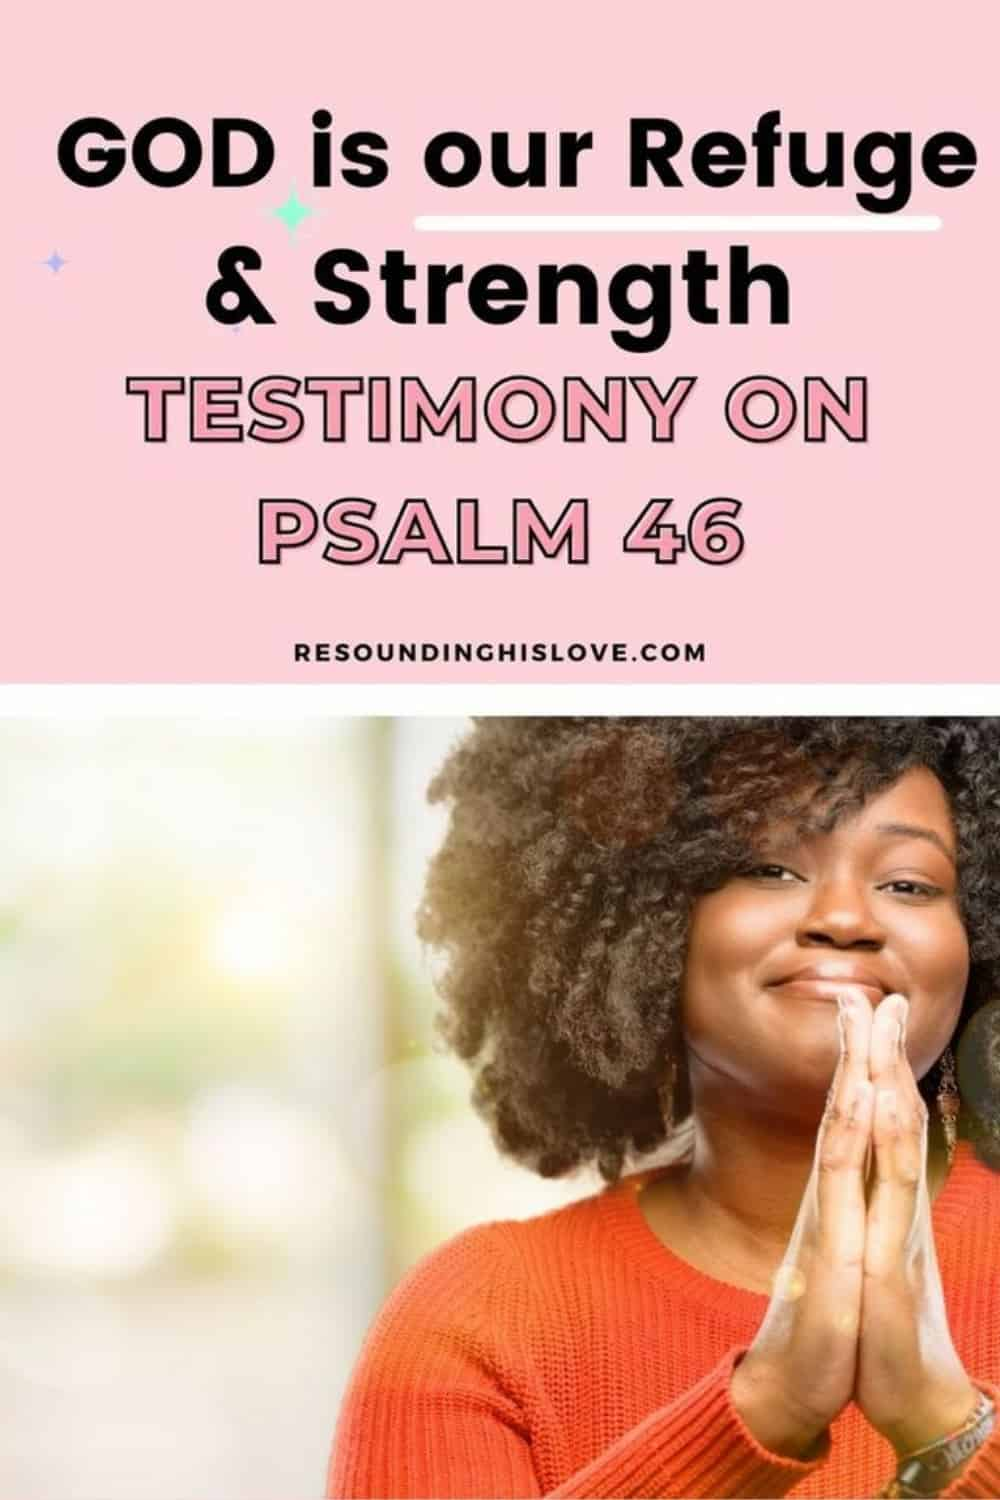 a woman wearing an orange shirt smiling with hands together with text God is Our Refuge and Strength Testimony on Psalm 46